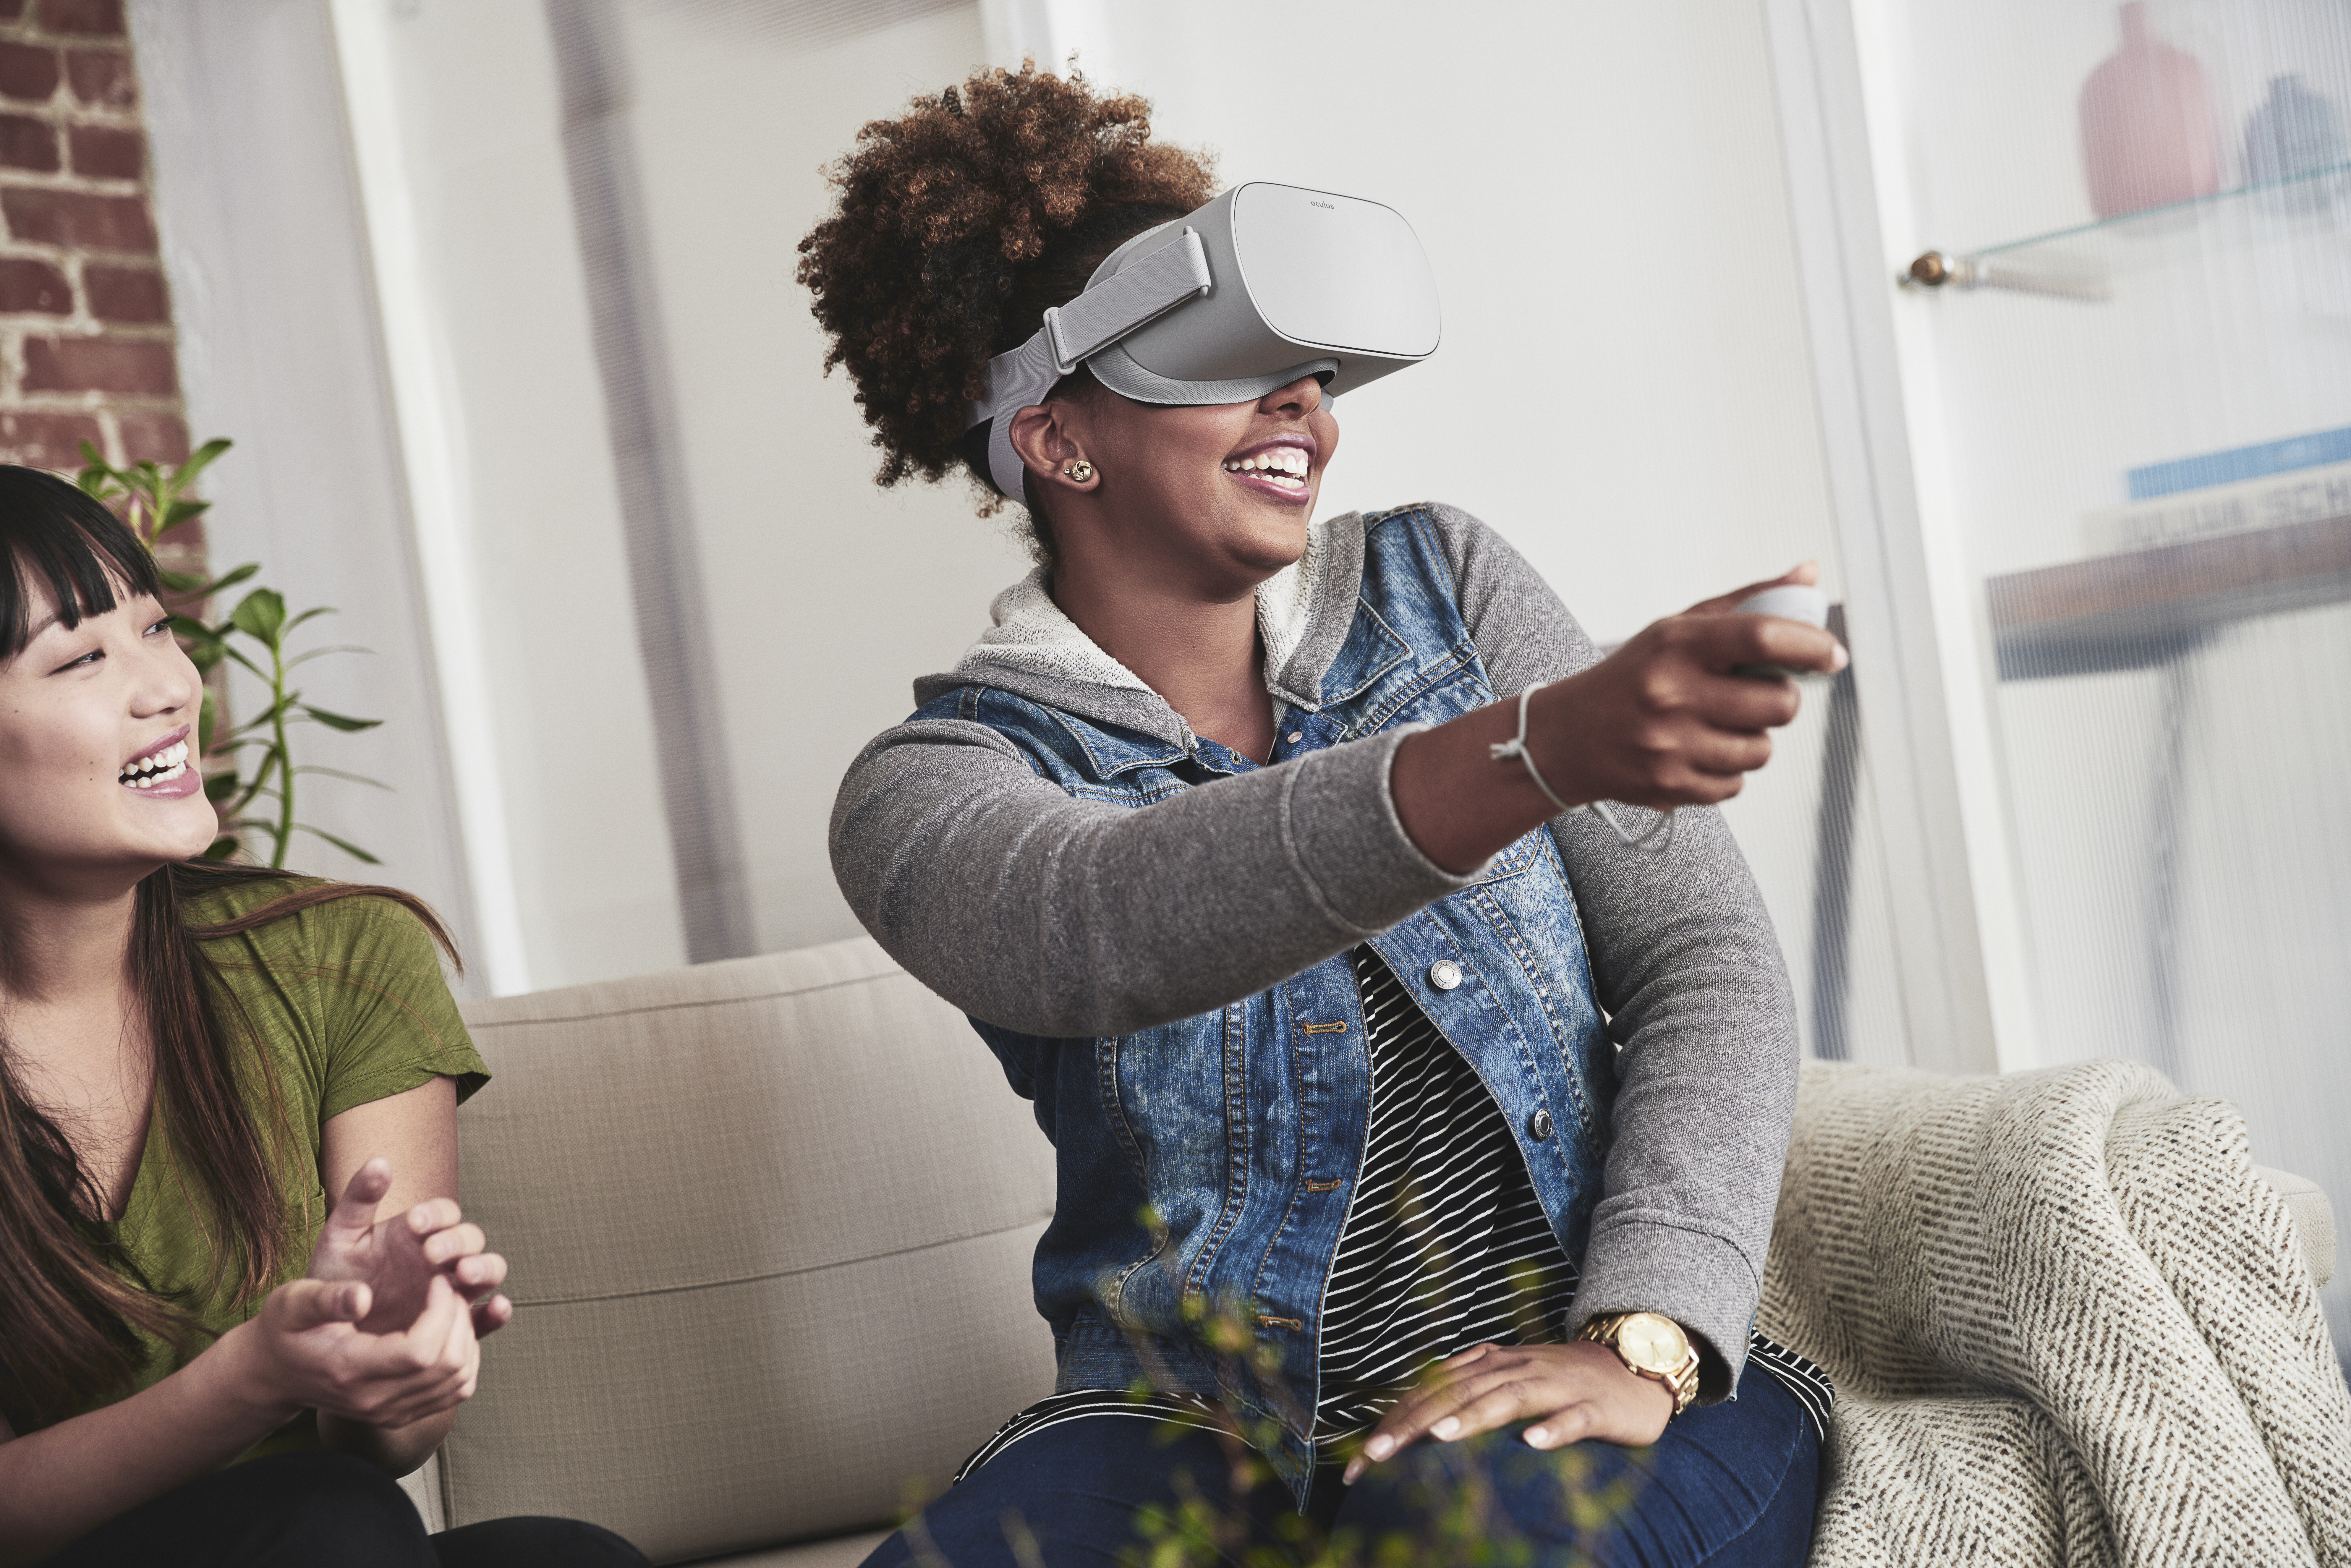 what-vr-headset-is-actually-like